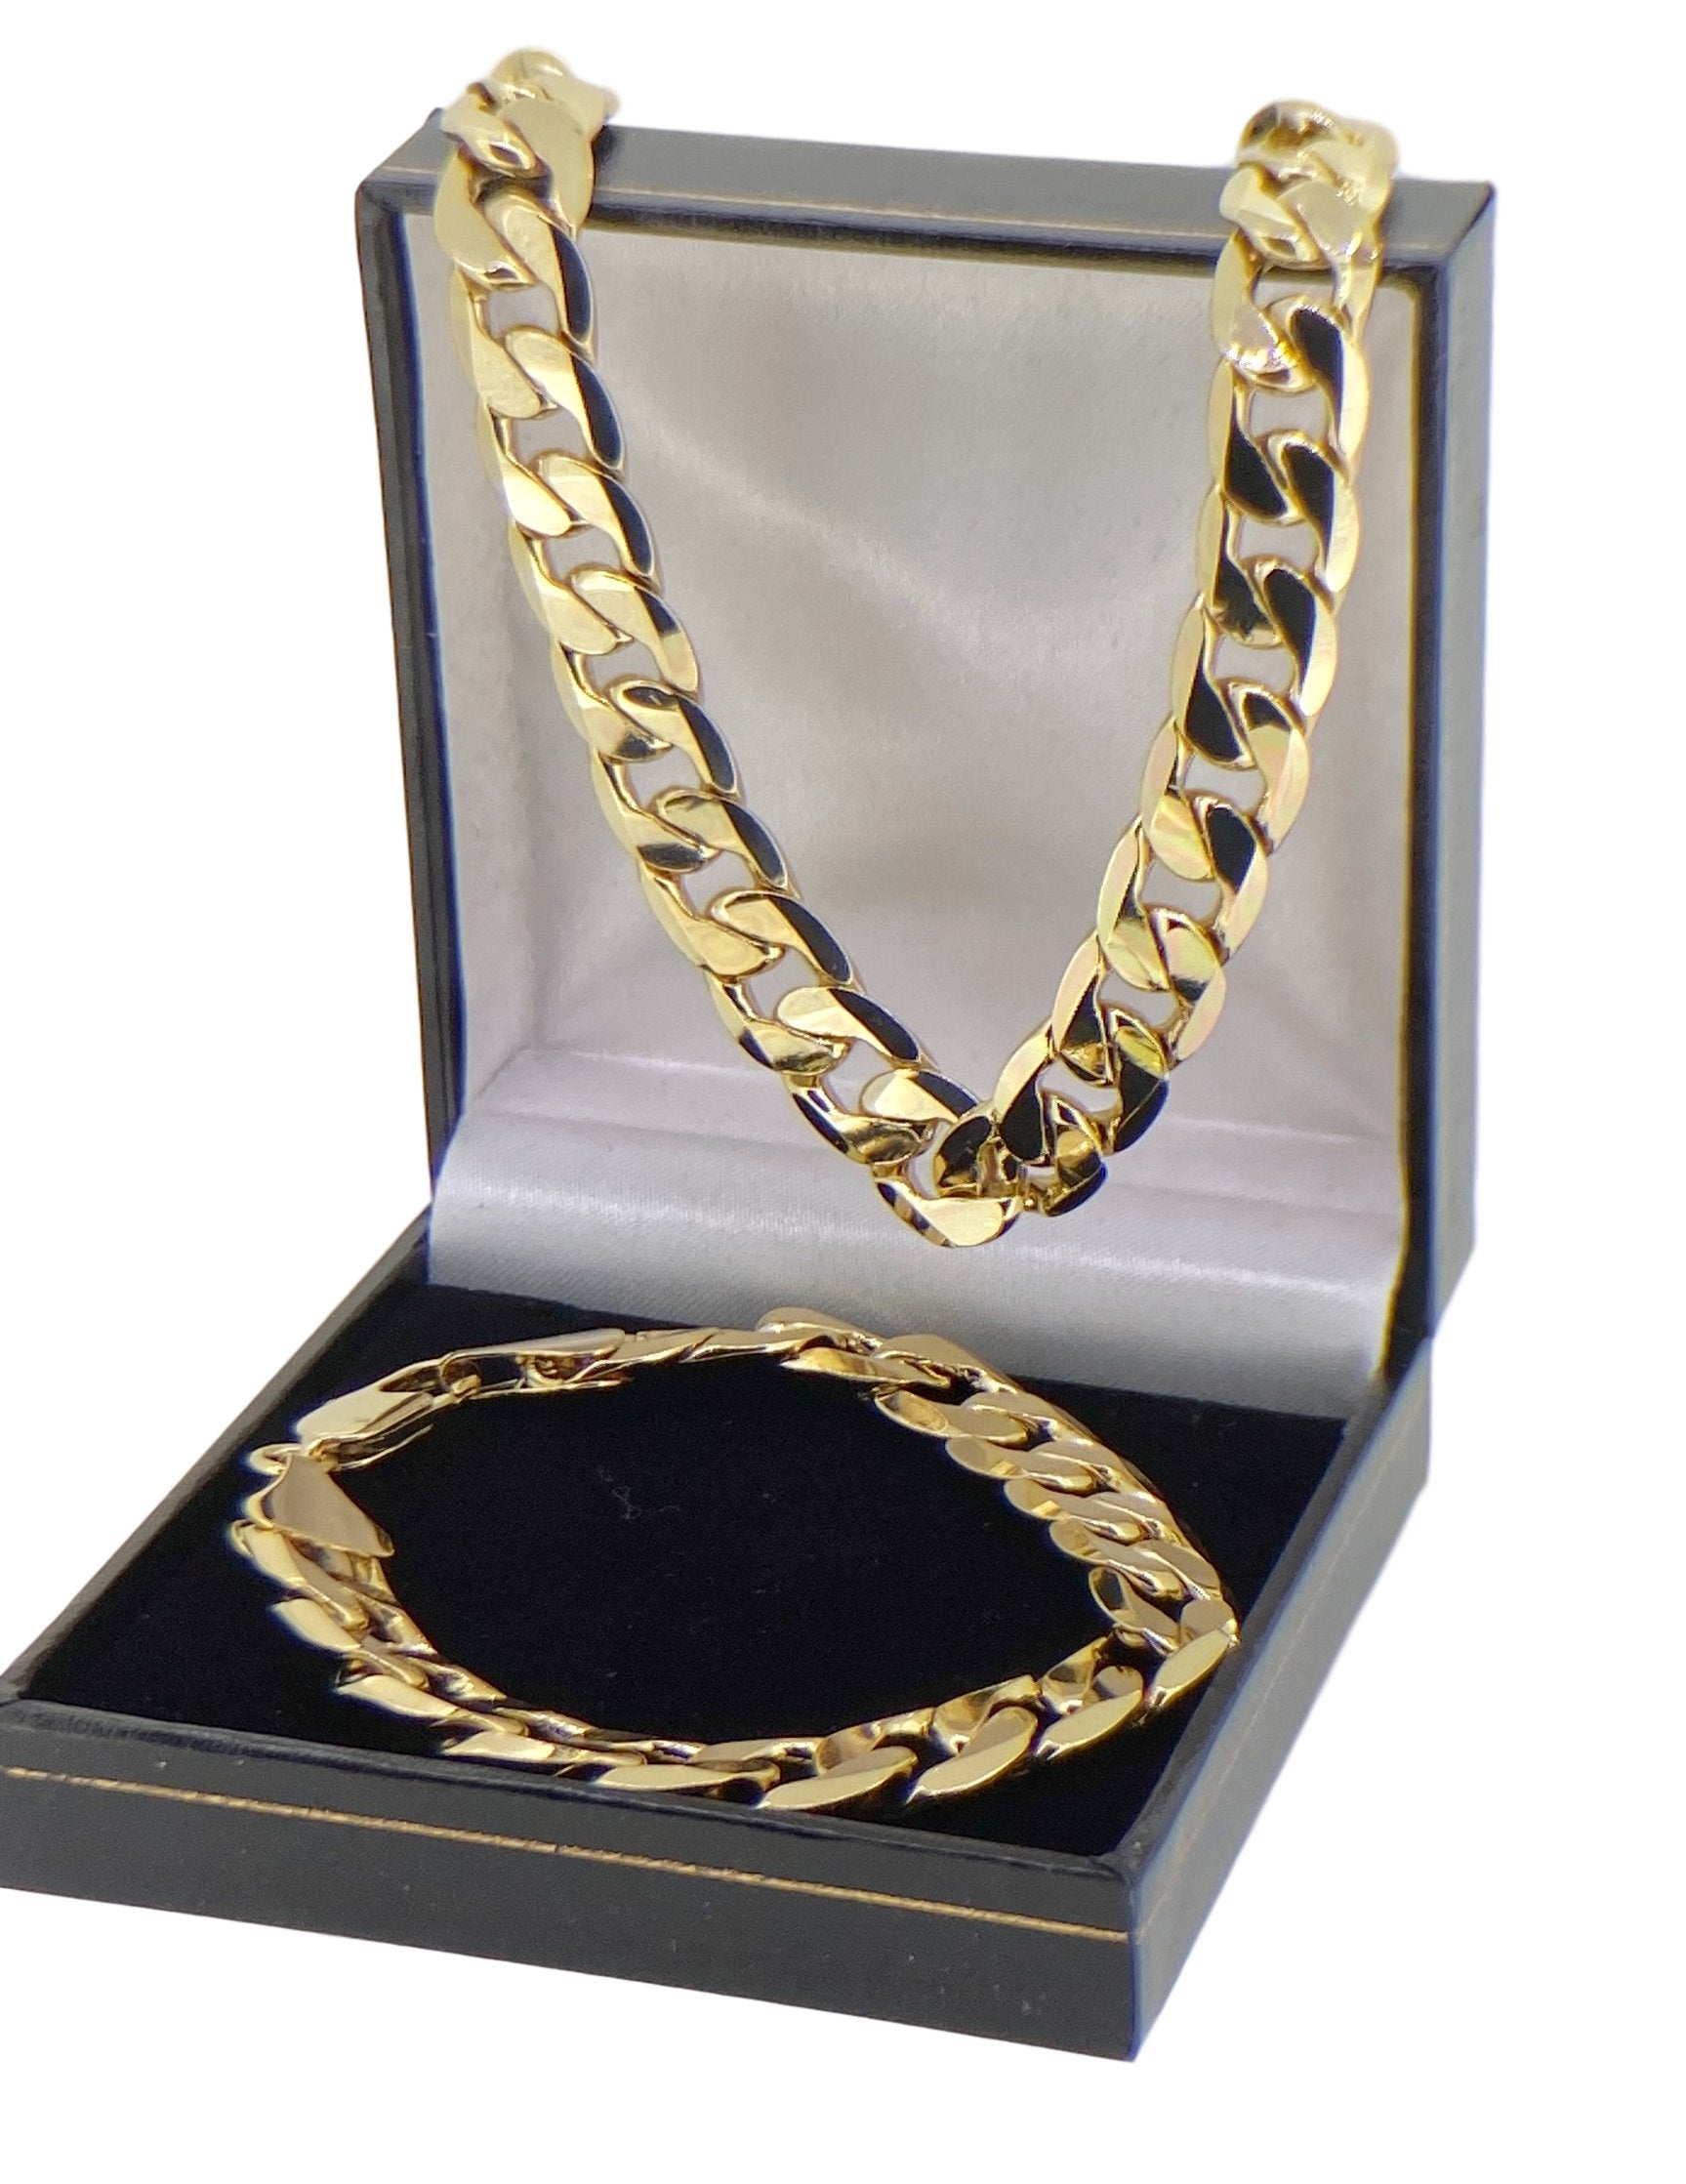 Set 12mm Gold Cuban Chain Necklace and Bracelet-Chains-Bling King-Bling King